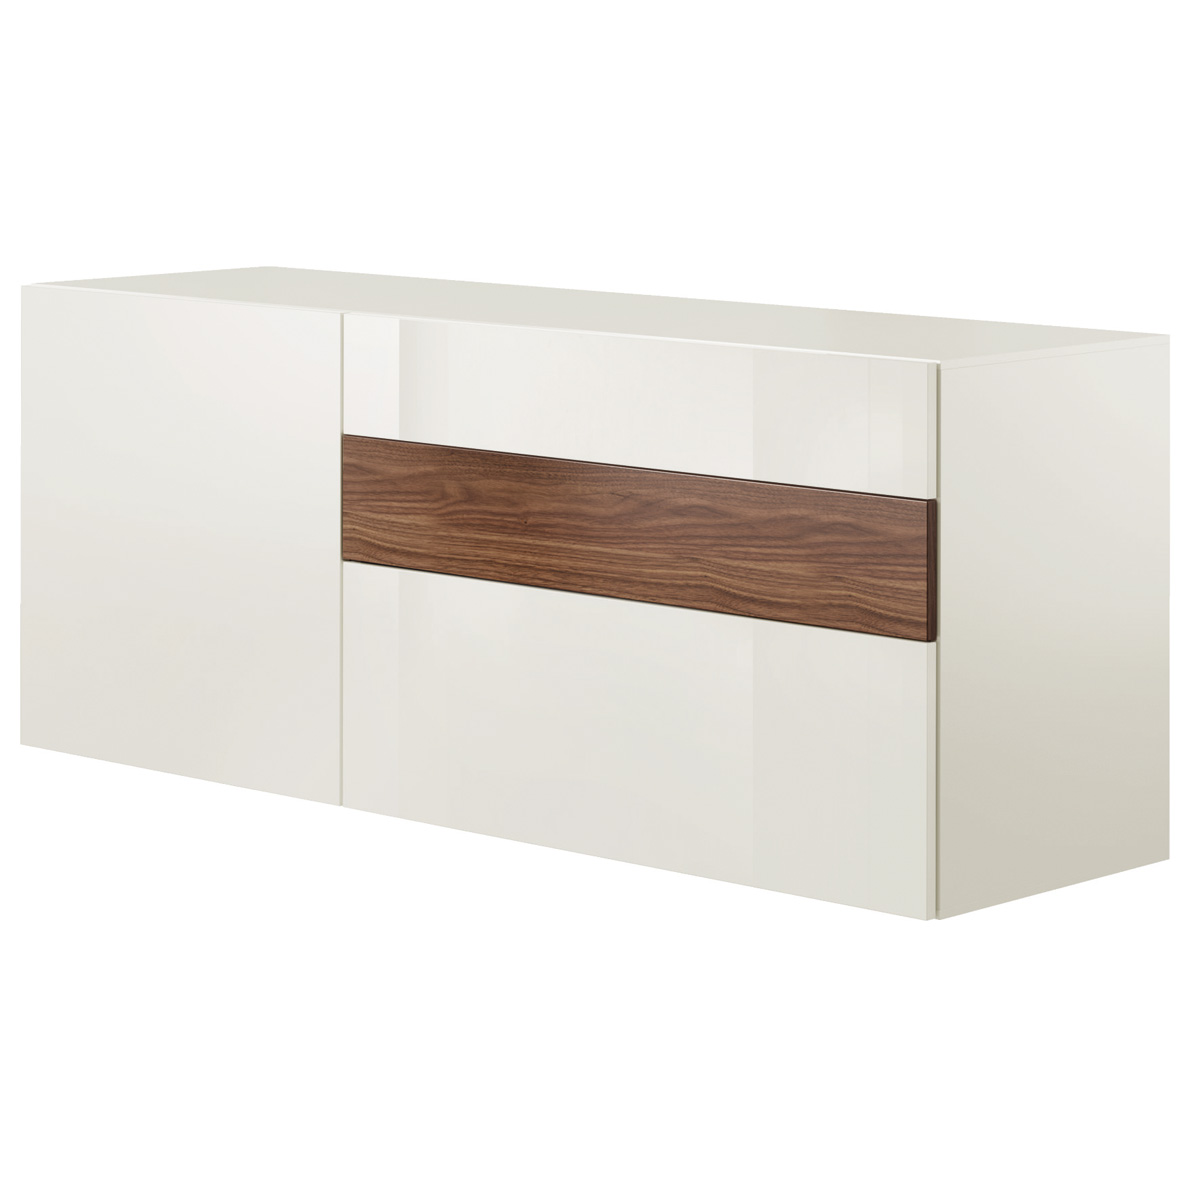 Now Vision By Hülsta Sideboard 4r 2 Schubladen